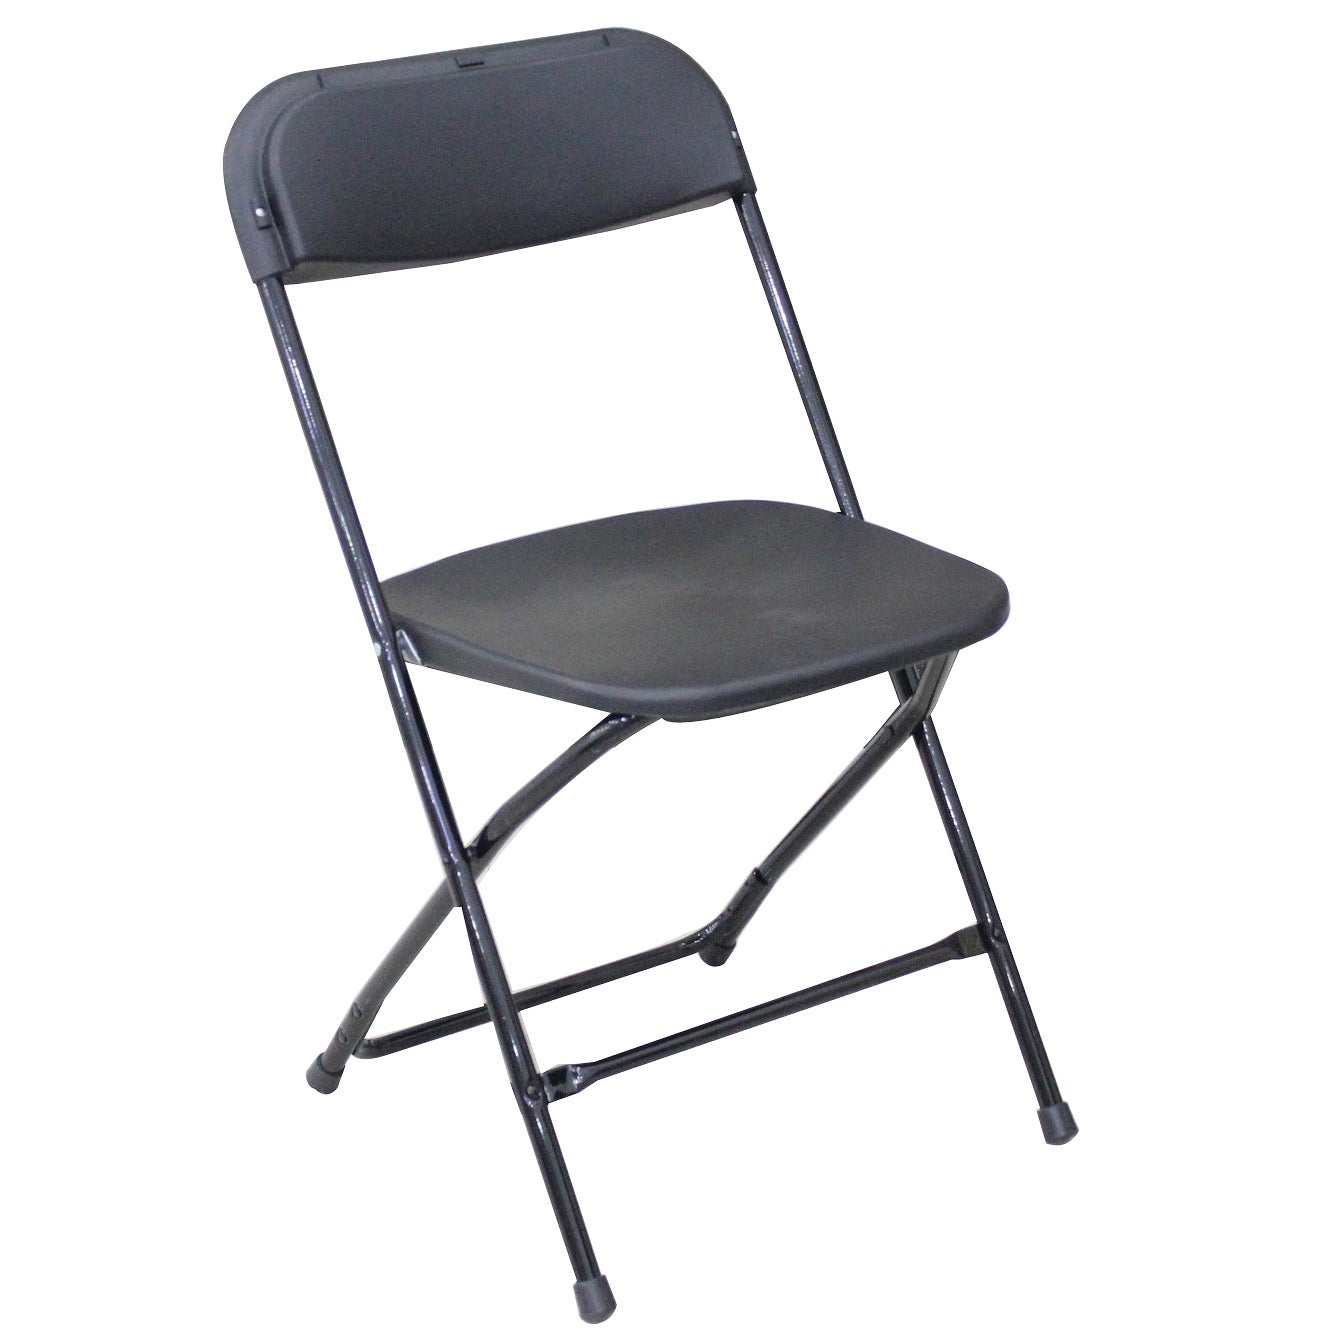 Gallery Lightweight Black Plastic Folding Chairs (Pack of 6)